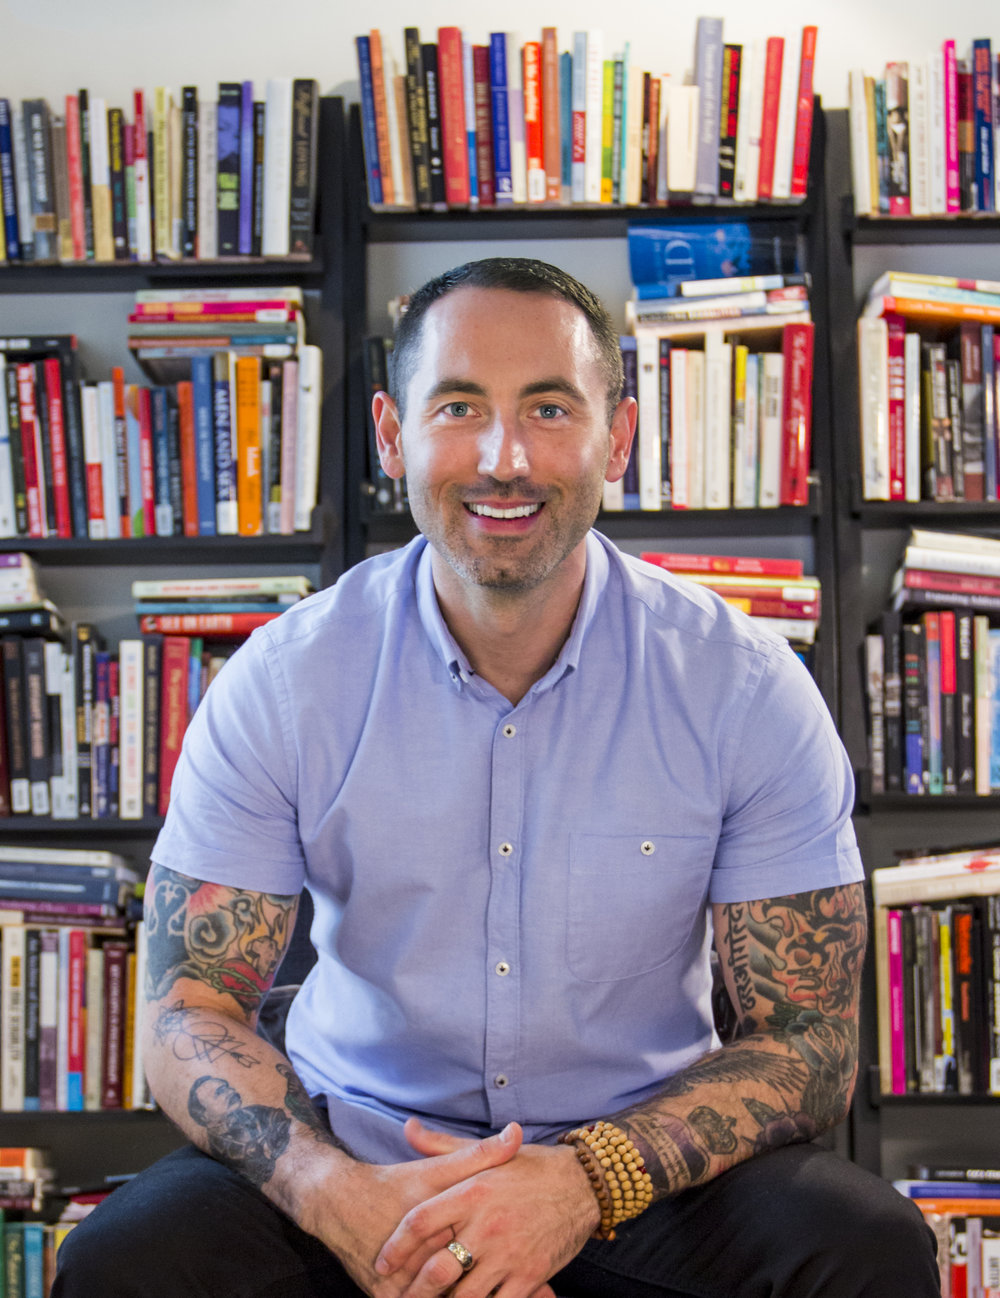 "Dr. Chris Donaghue - Dr. Chris Donaghue is a sex therapist and host of the LoveLine podcast with Amber Rose Show and frequent co host on ""The Doctors"" tv show.  He previously hosted WE tv's ""Sex Box""and Logo tv's ""Bad Sex"".  Author of the book, ""Sex Outside the Lines"